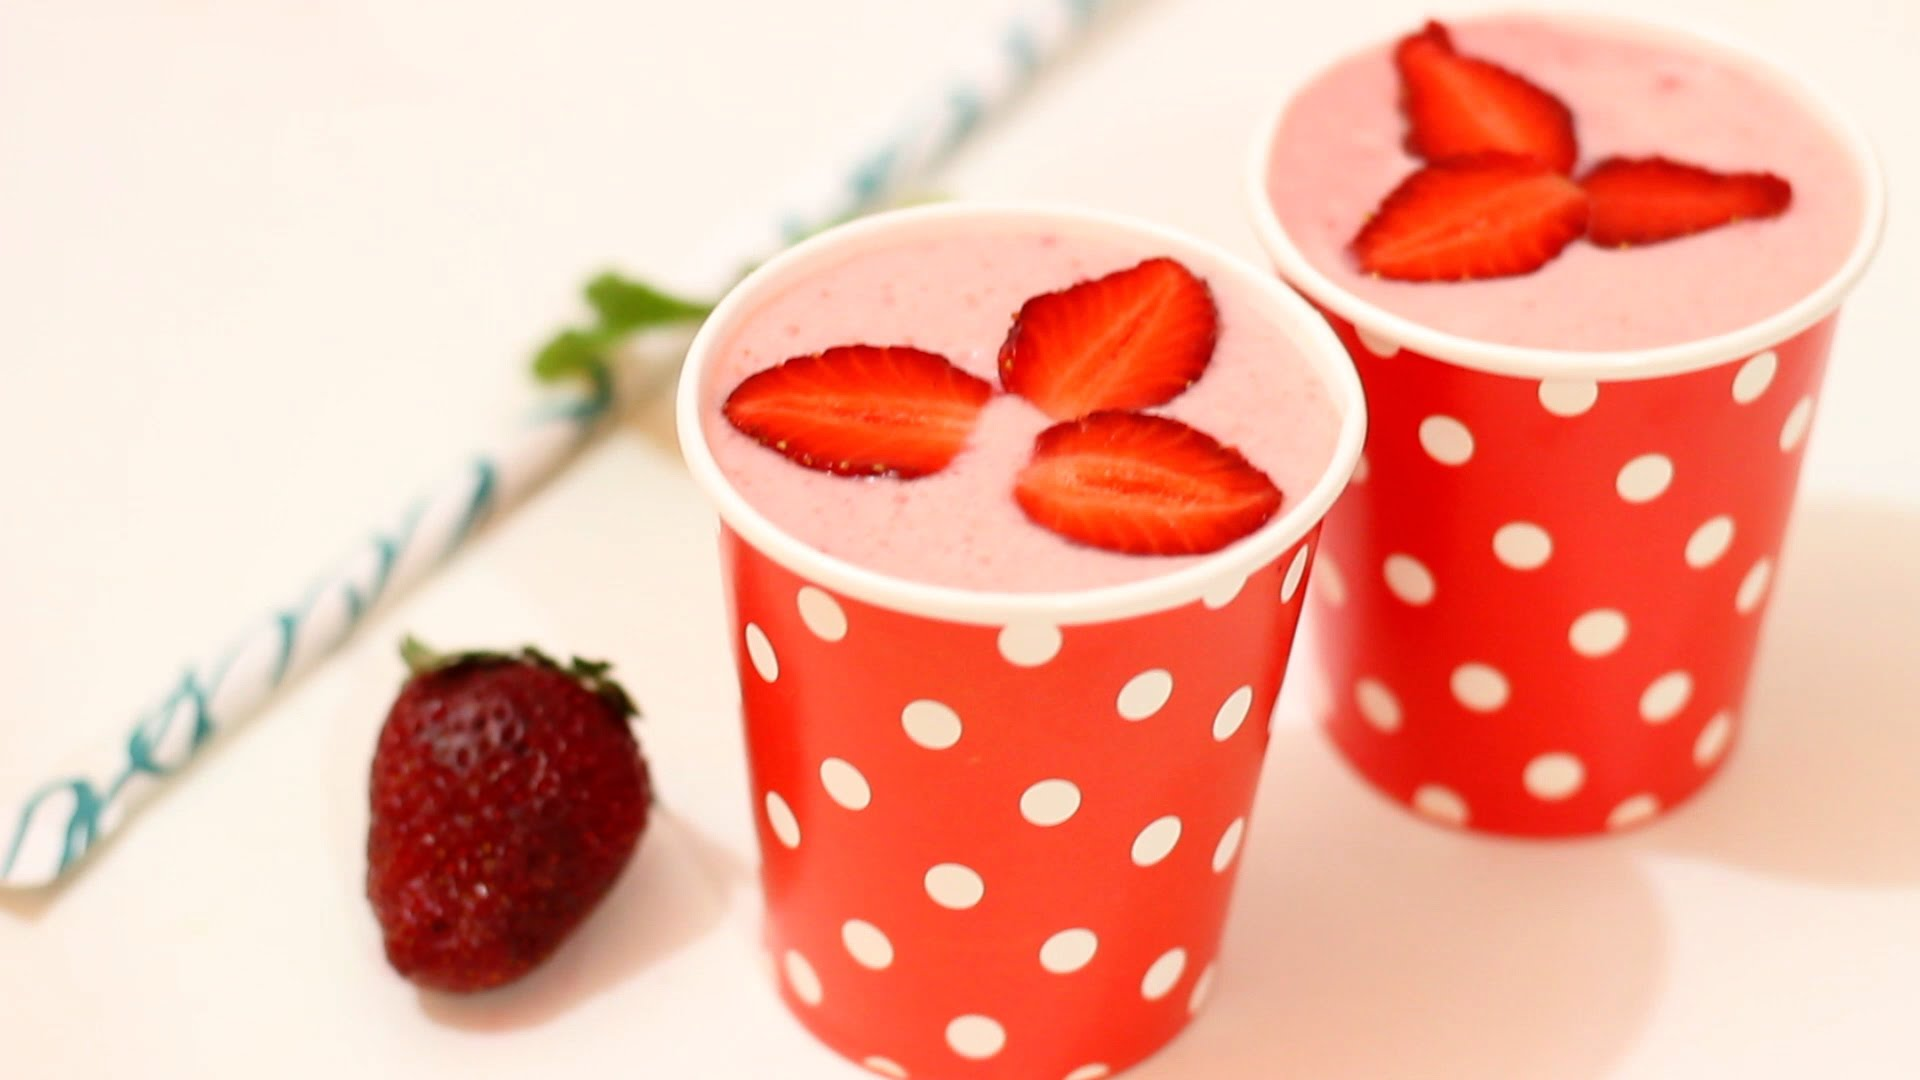 Strawberry Yogurt Smothie Recipe - Healthy Drinks - Strawberry ...